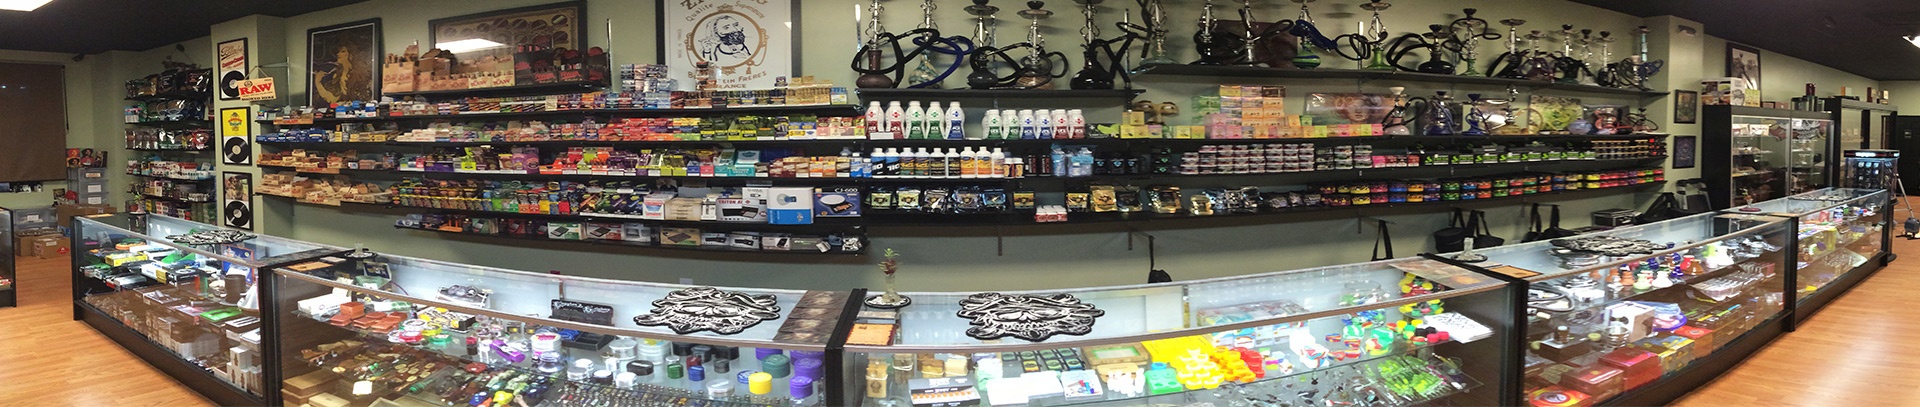 smoke-shop-fort-myers-ft-myers-naples-golden-gate-city-estero-fl-florida-treasure-chest-glass-pipes-cigarettes-cigars-tobacco